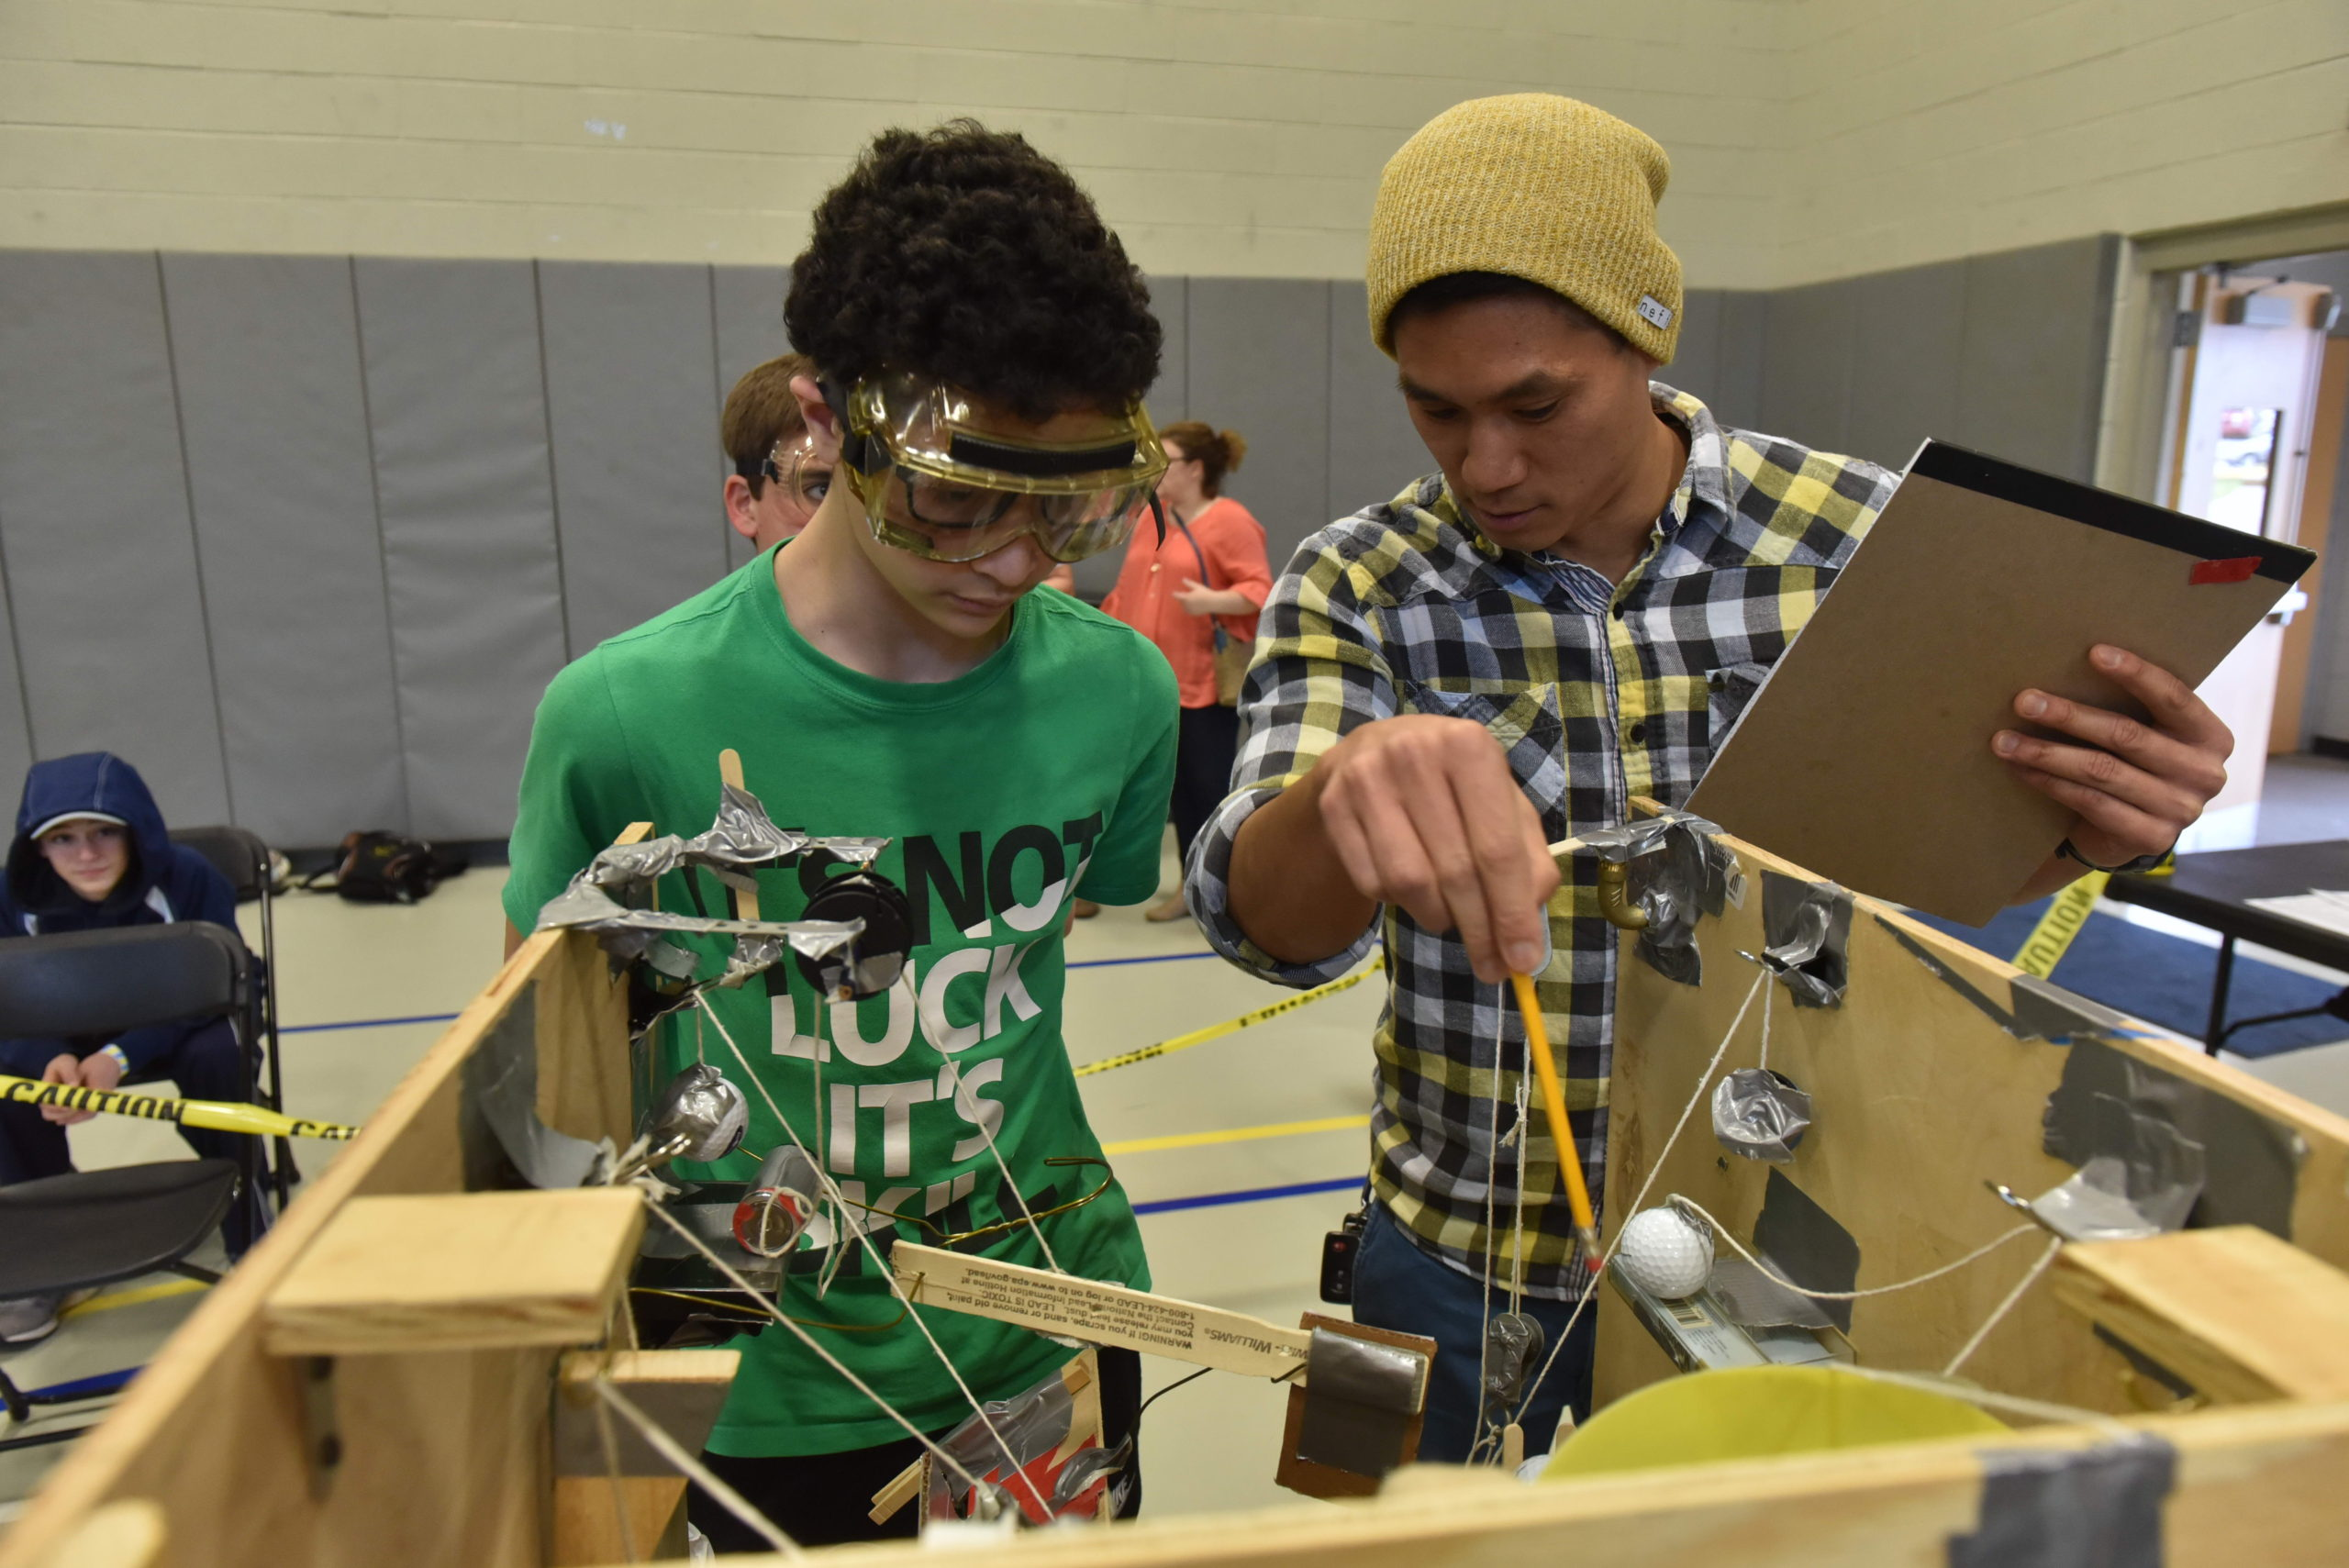 Students Test Their Inventions, Knowledge at Science Olympiad at Neumann University